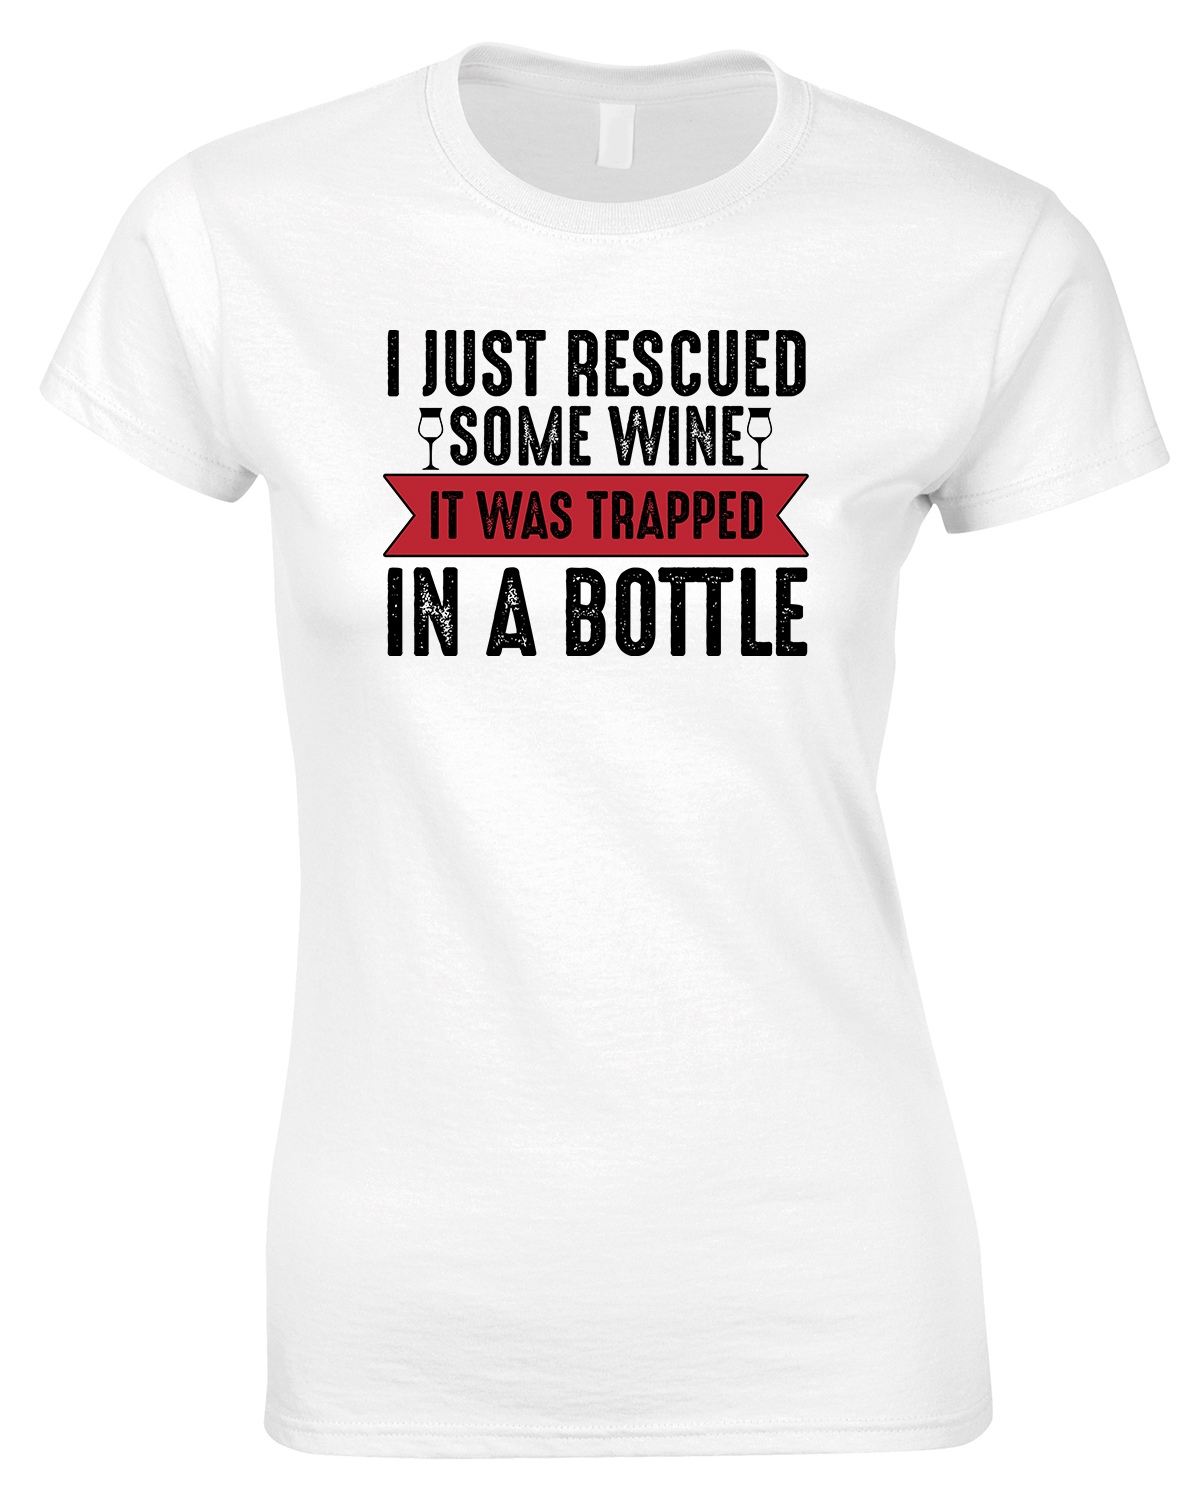 I Just Rescued Some Wine It was Trapped in A Bottle Ladies Drinking T Shirt